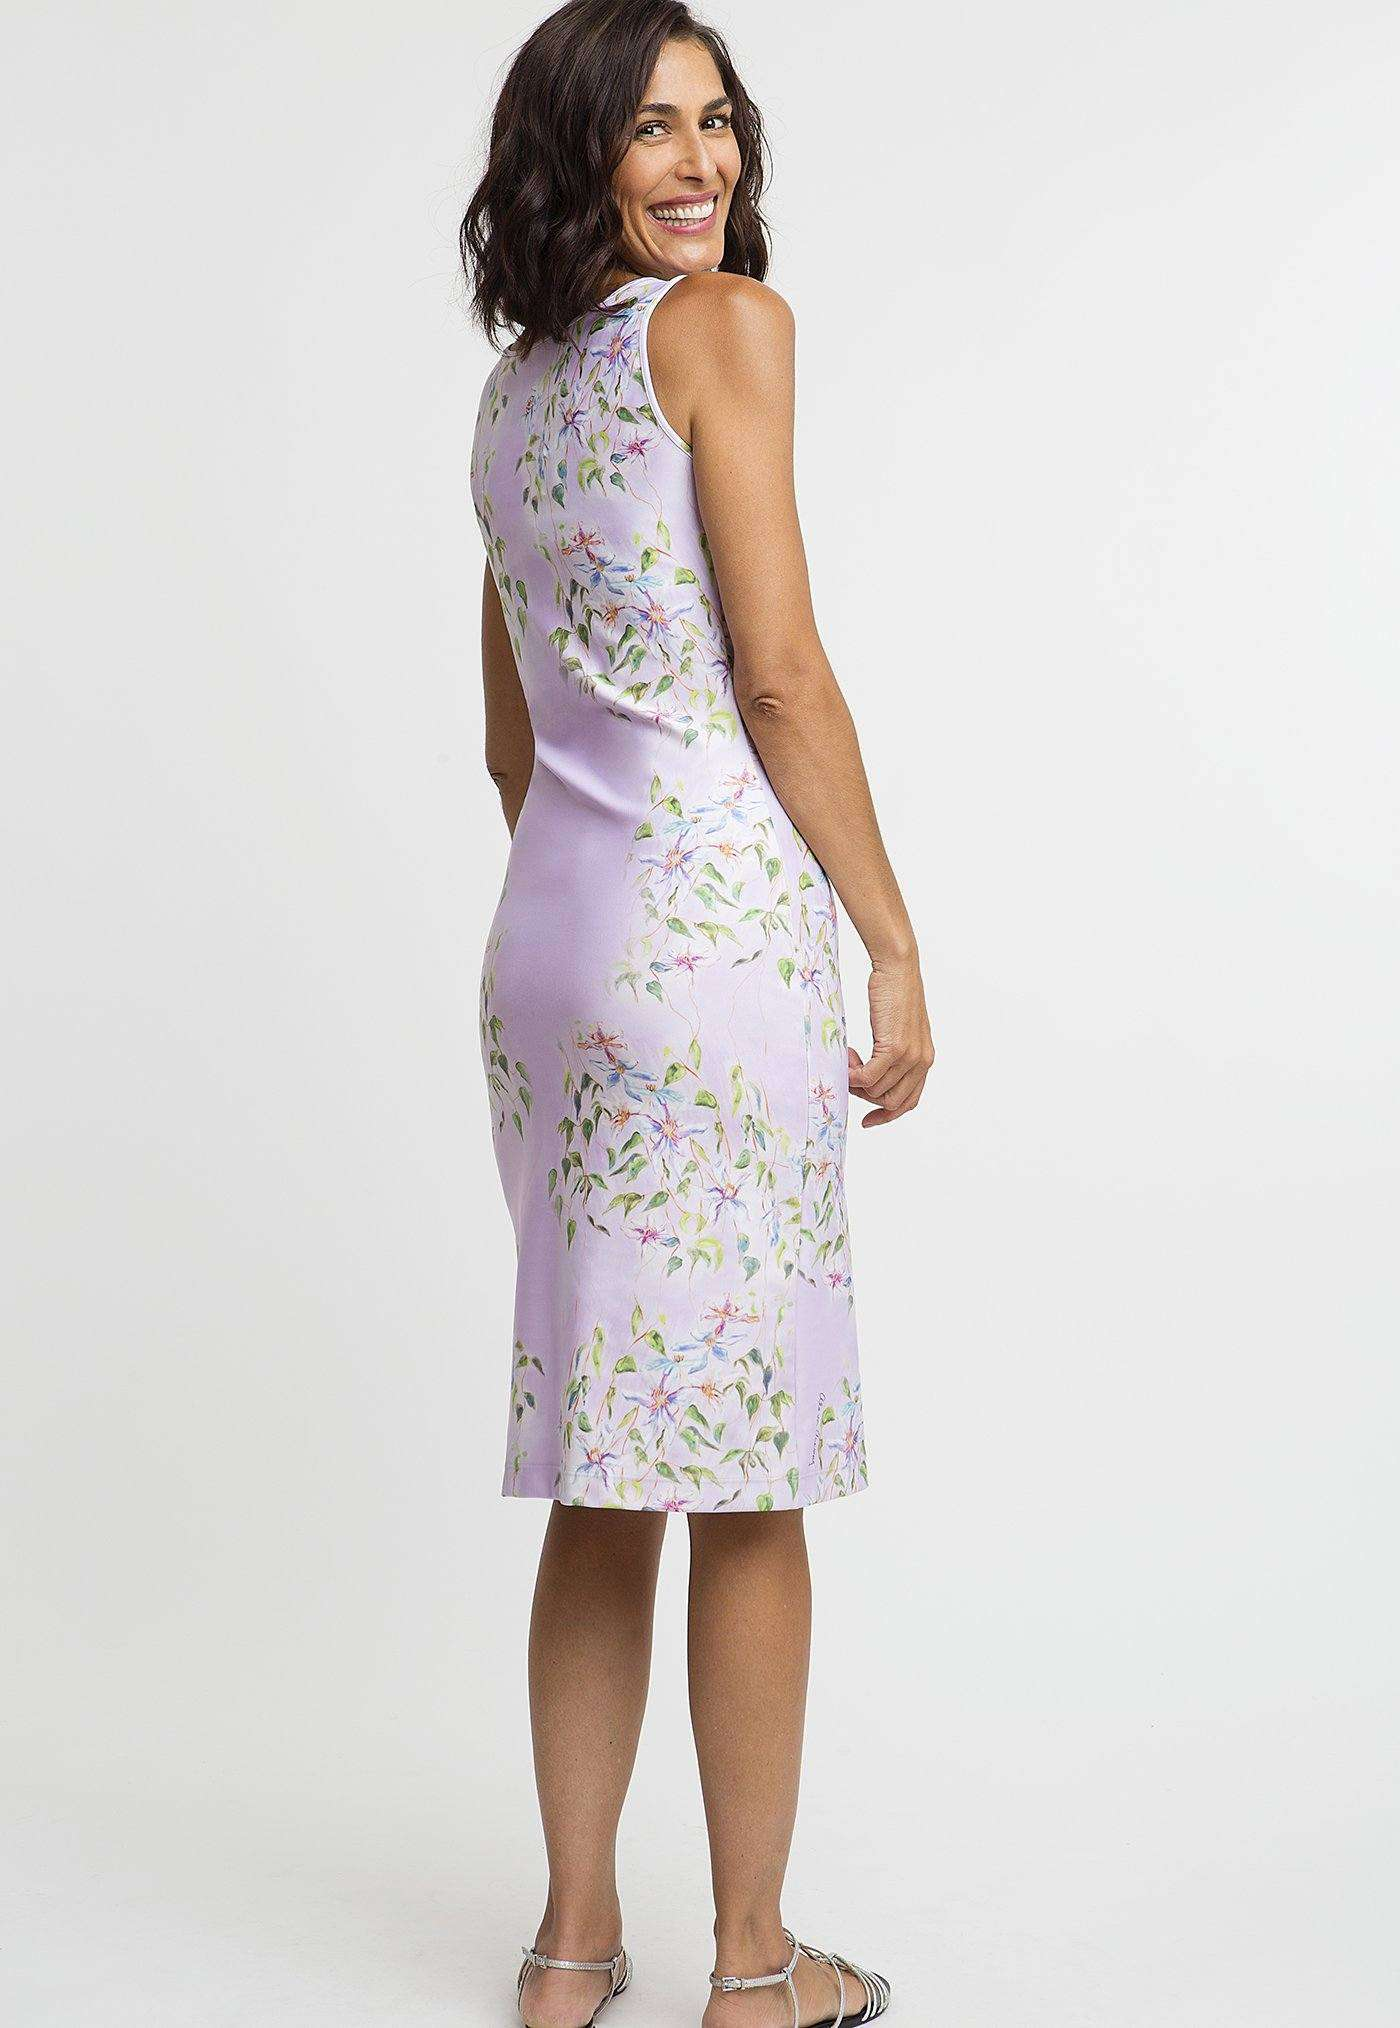 Lavinia Short Dress in Sagaponack back view